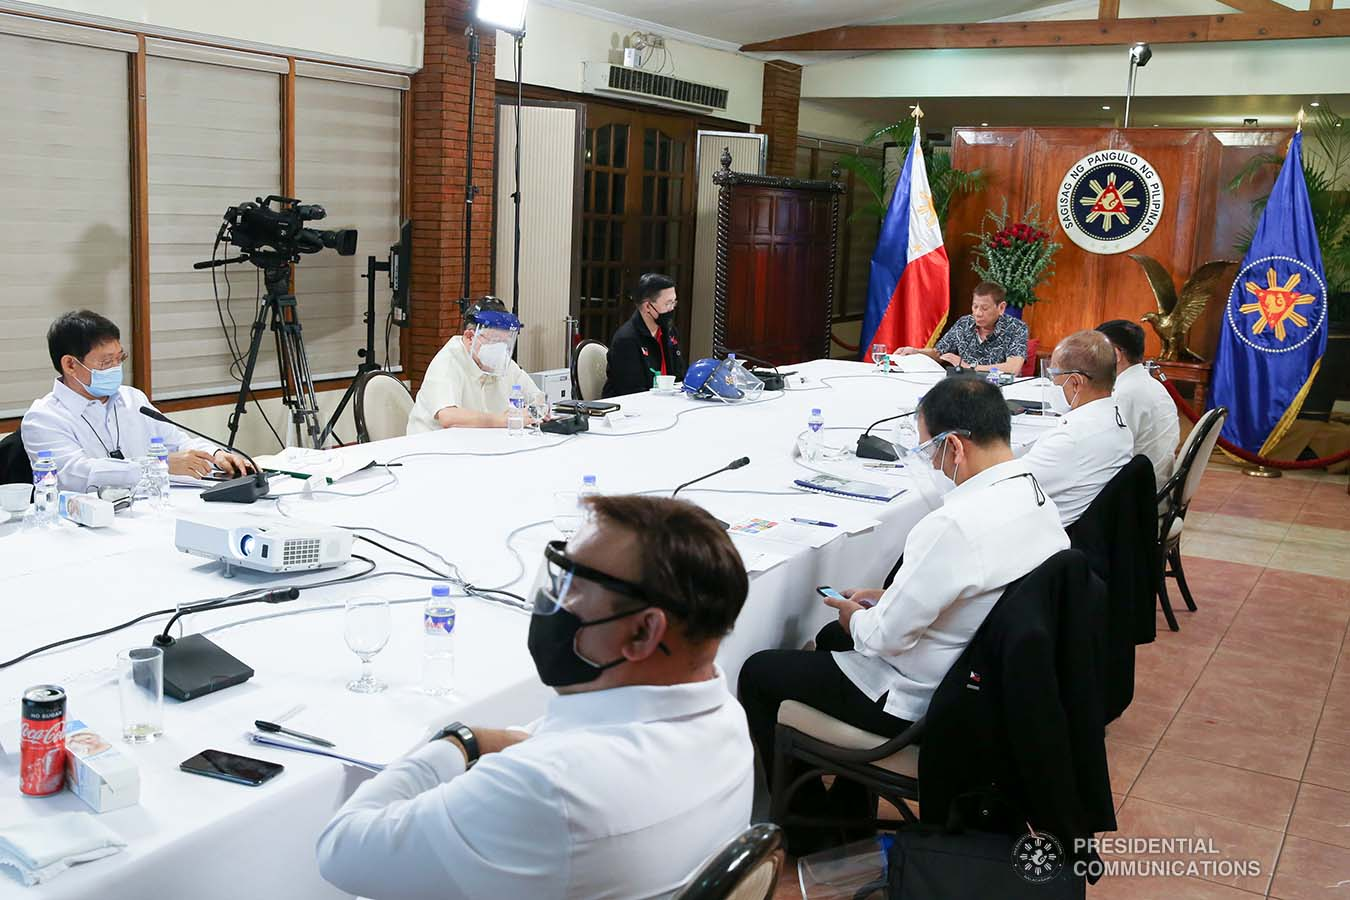 President Rodrigo Roa Duterte holds a meeting with the Inter-Agency Task Force on the Emerging Infectious Diseases (IATF-EID) core members at the Malago Clubhouse in Malacañang on June 30, 2020. ALBERT ALCAIN/PRESIDENTIAL PHOTO